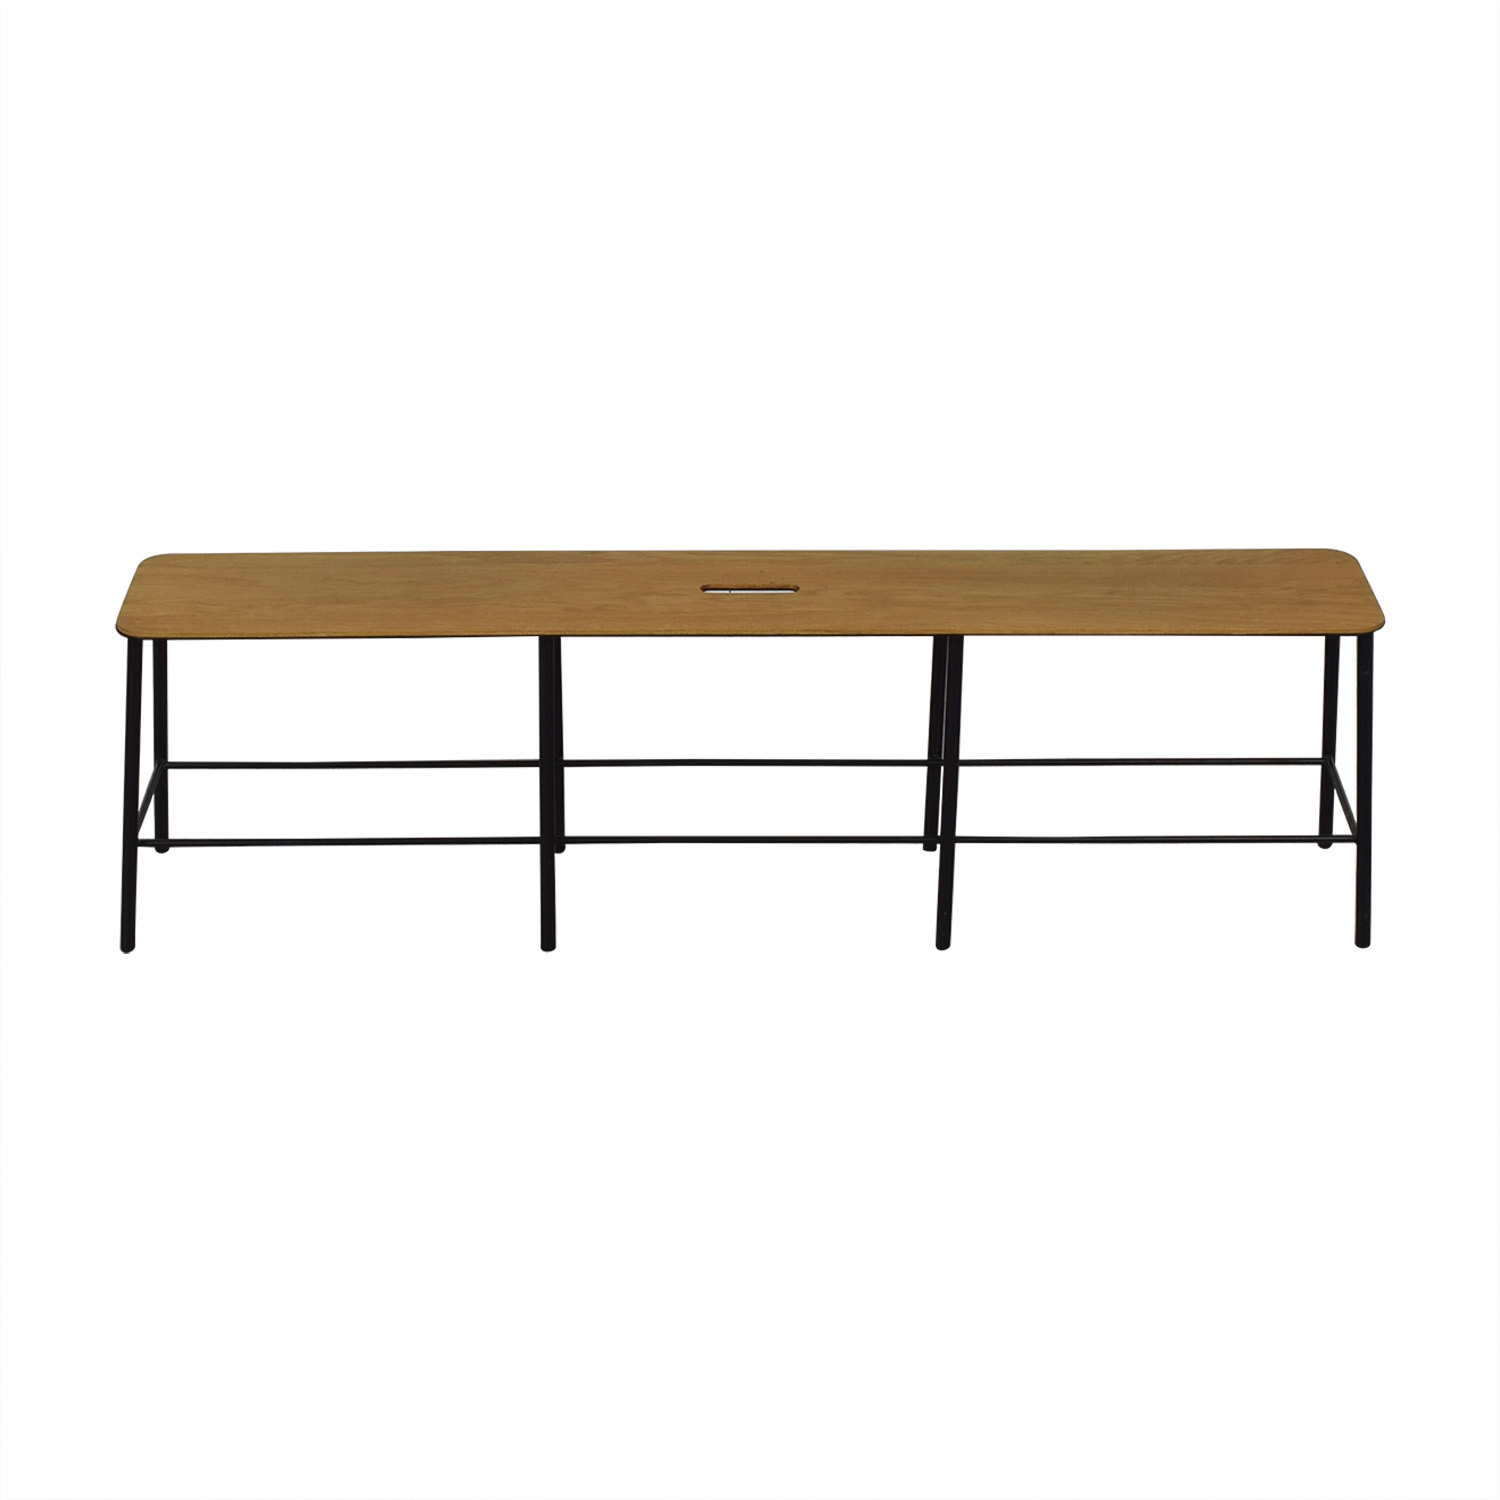 Frama Frama Adam Collection Bench dimensions